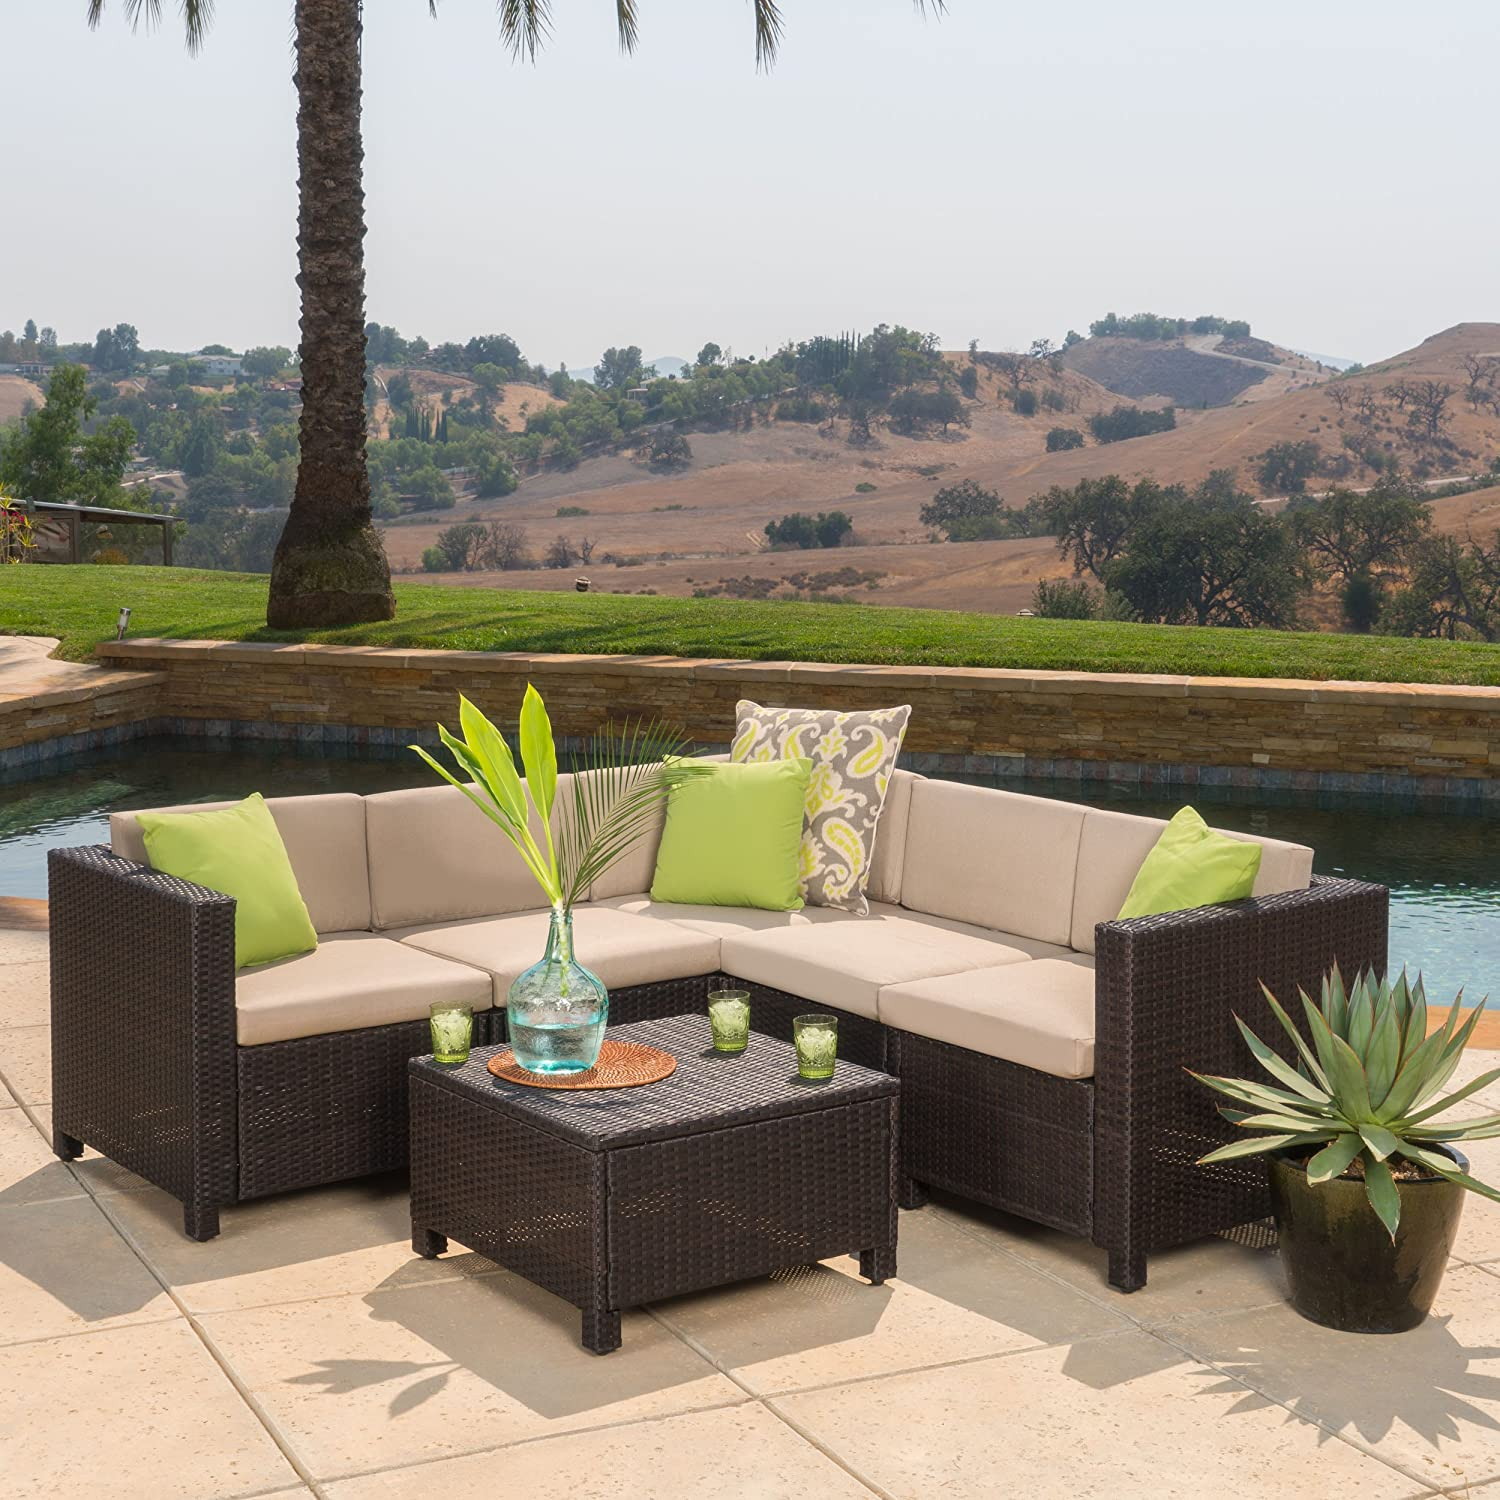 Amazon Venice Outdoor Patio Furniture Wicker Sectional Sofa